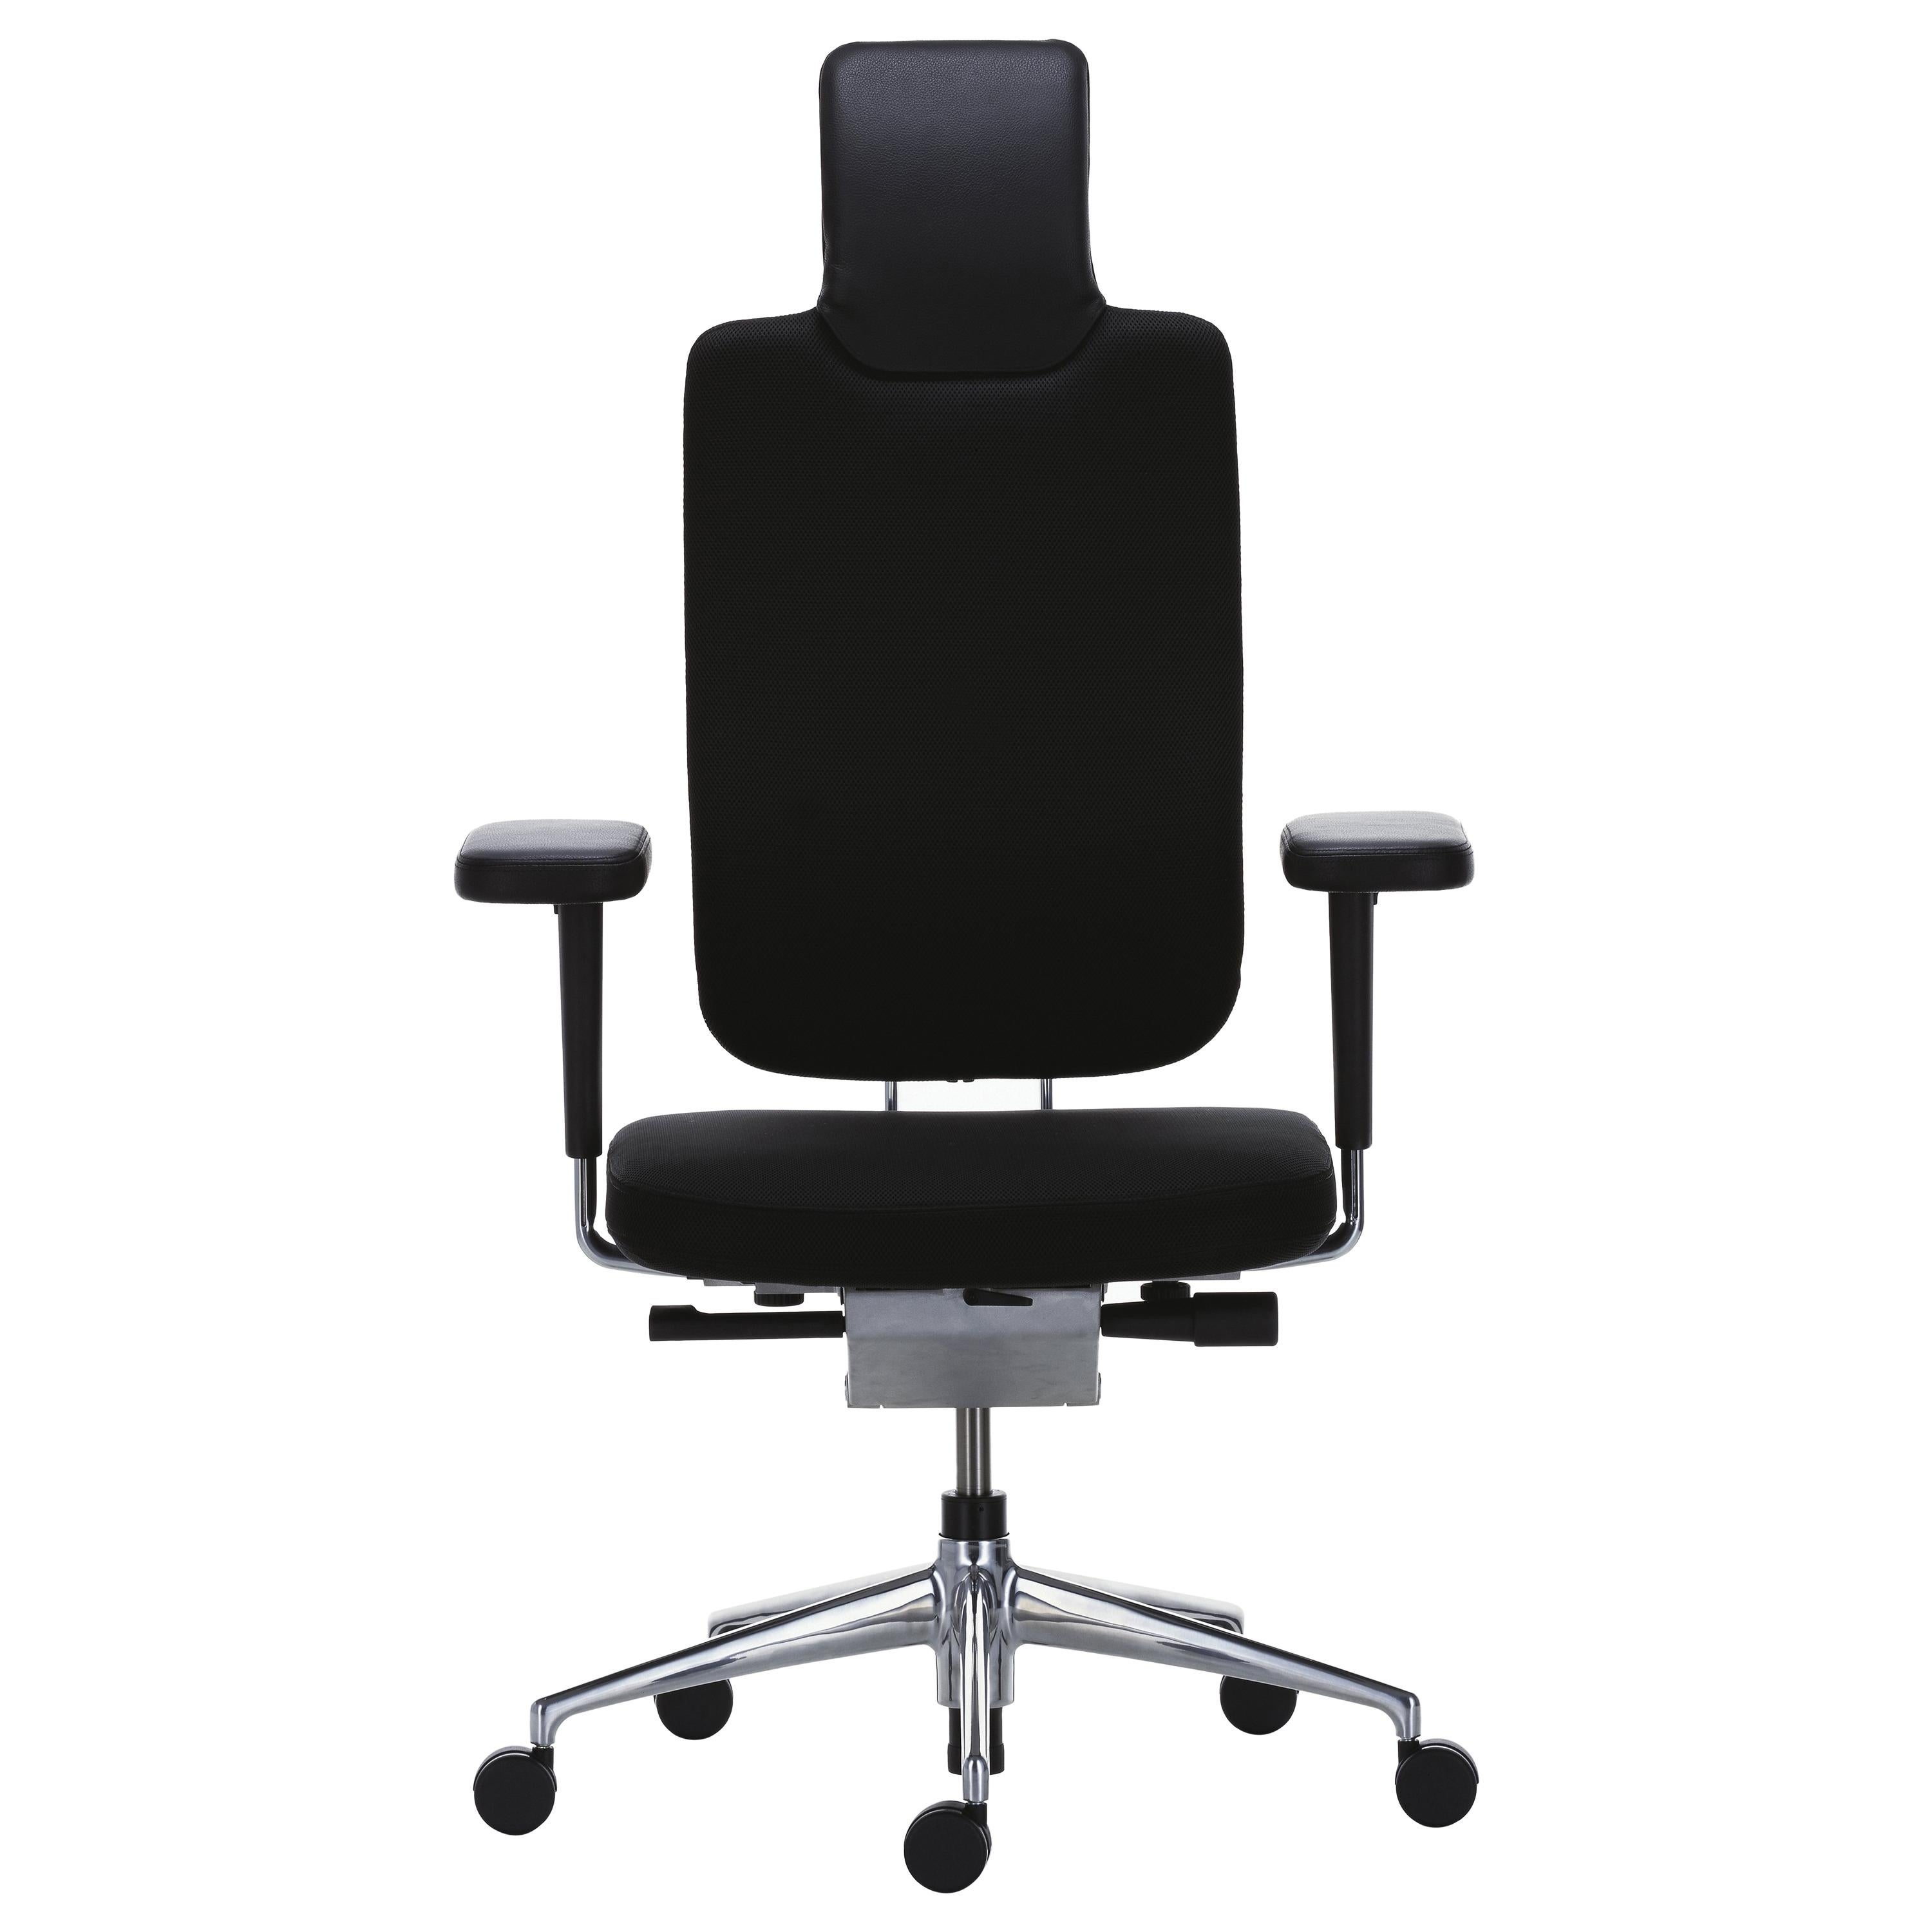 vitra ergonomic chair without arms headline office in black w leather details mario and claudio bellini for